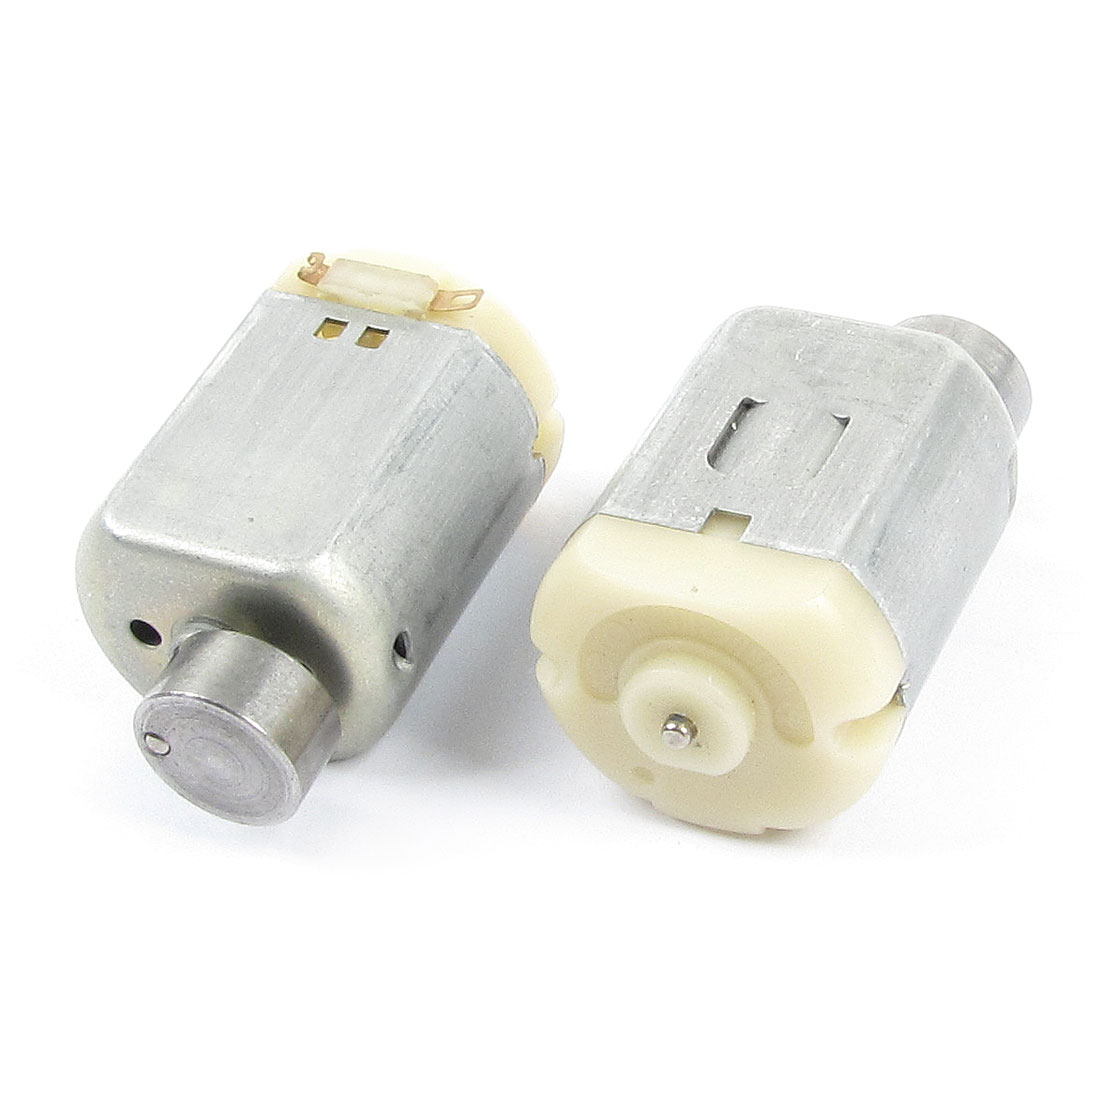 17500RPM-DC-6V-Magnetic-Vibrating-Vibration-Mini-Motor-2PCS